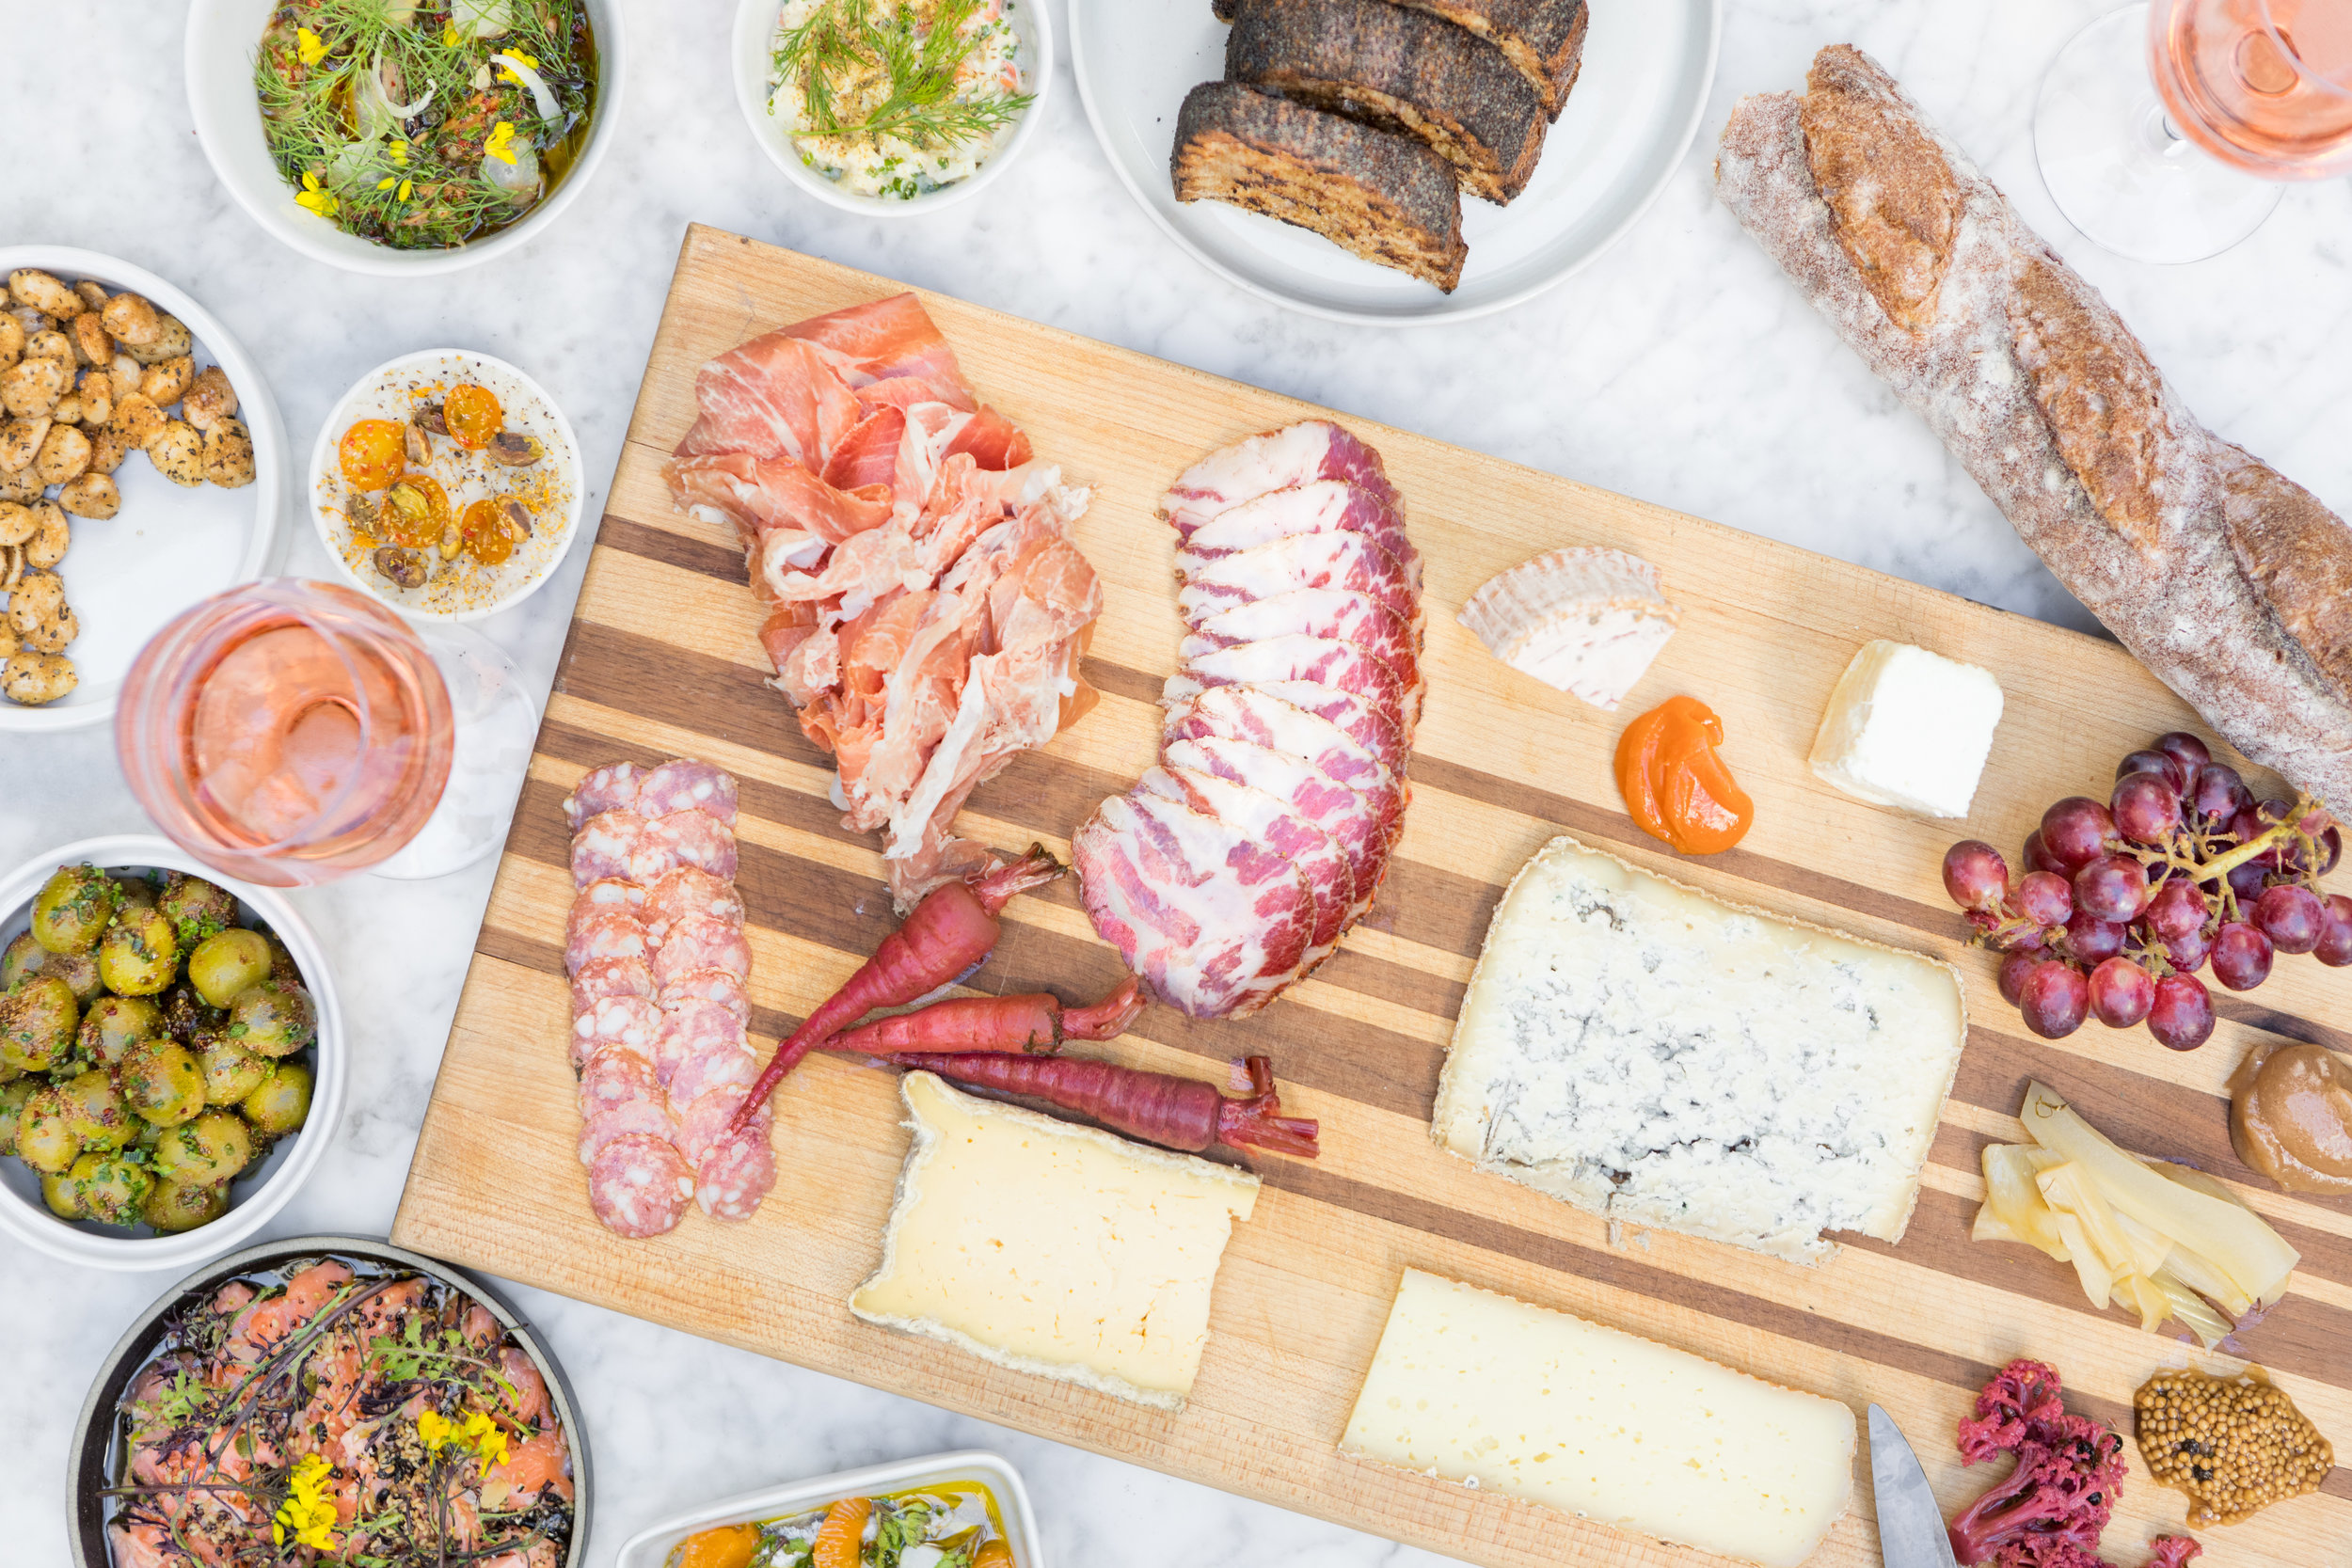 Charcuterie tray with many meat, cheese, and spread selections